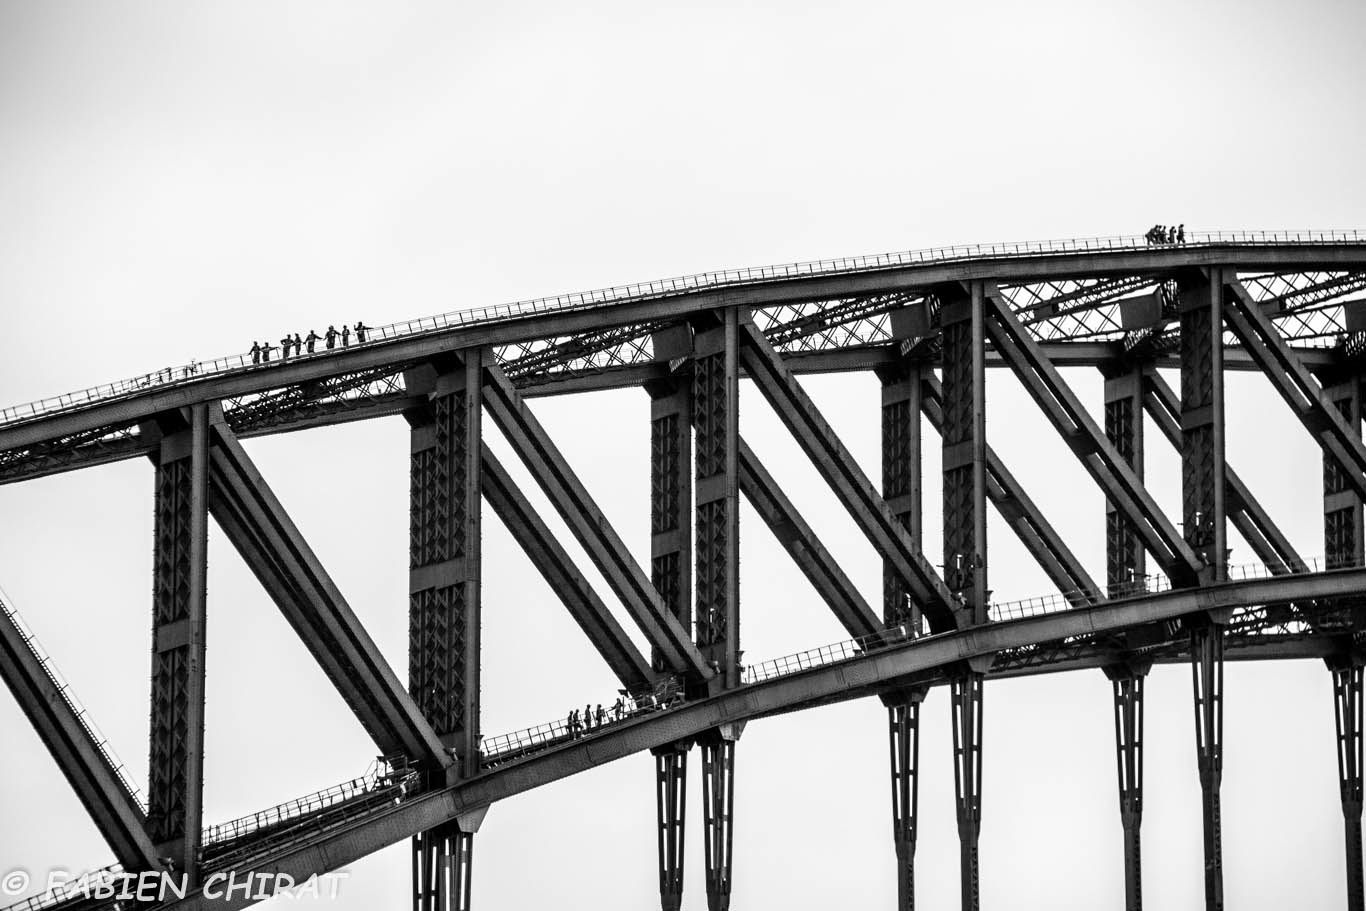 Quelques funambules sur l'Harbour bridge